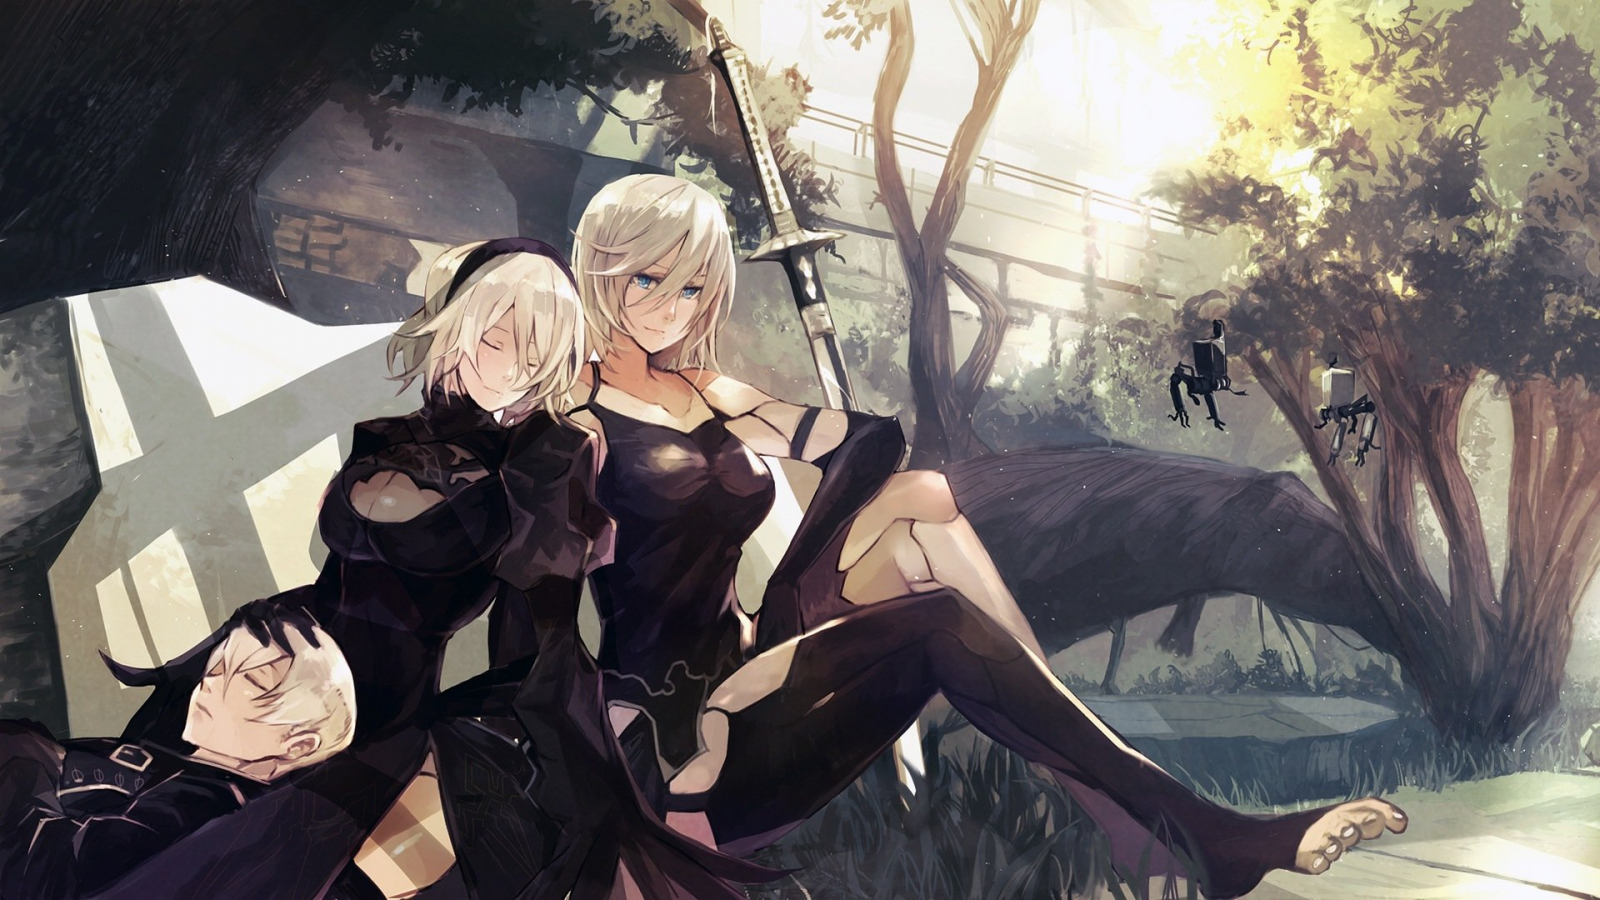 Free Download Nier Automata A22b And 9s Hd Wallpaper Background